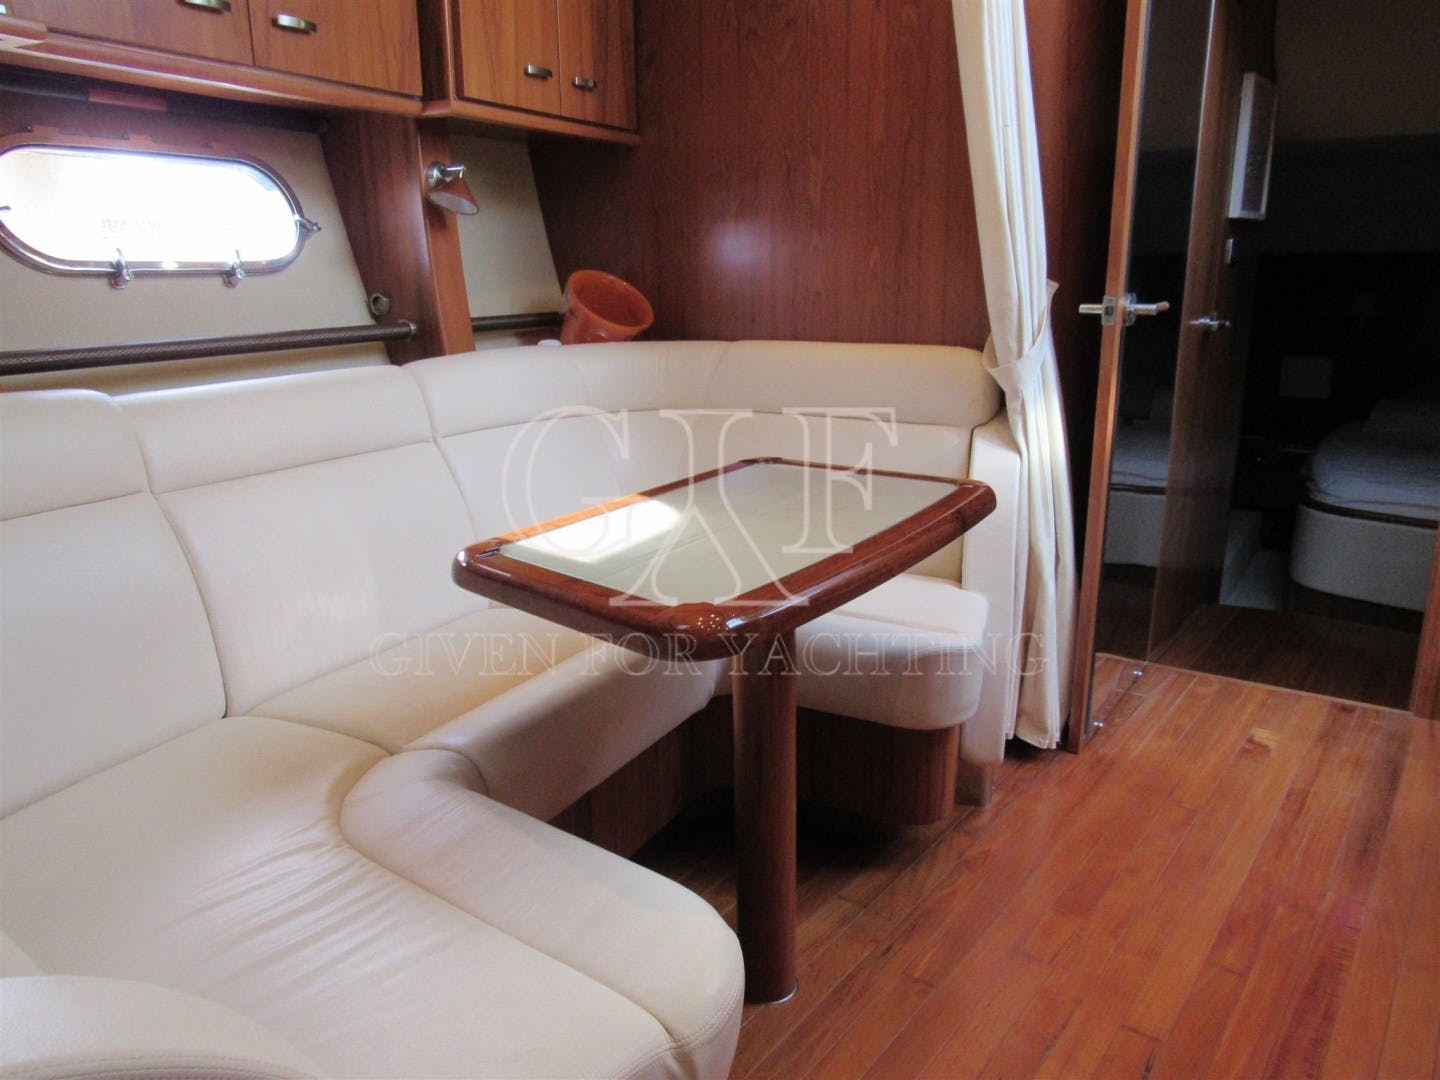 2008 Tiara Yachts 60' 5800 Sovran SLOWLY FOUR | Picture 8 of 24